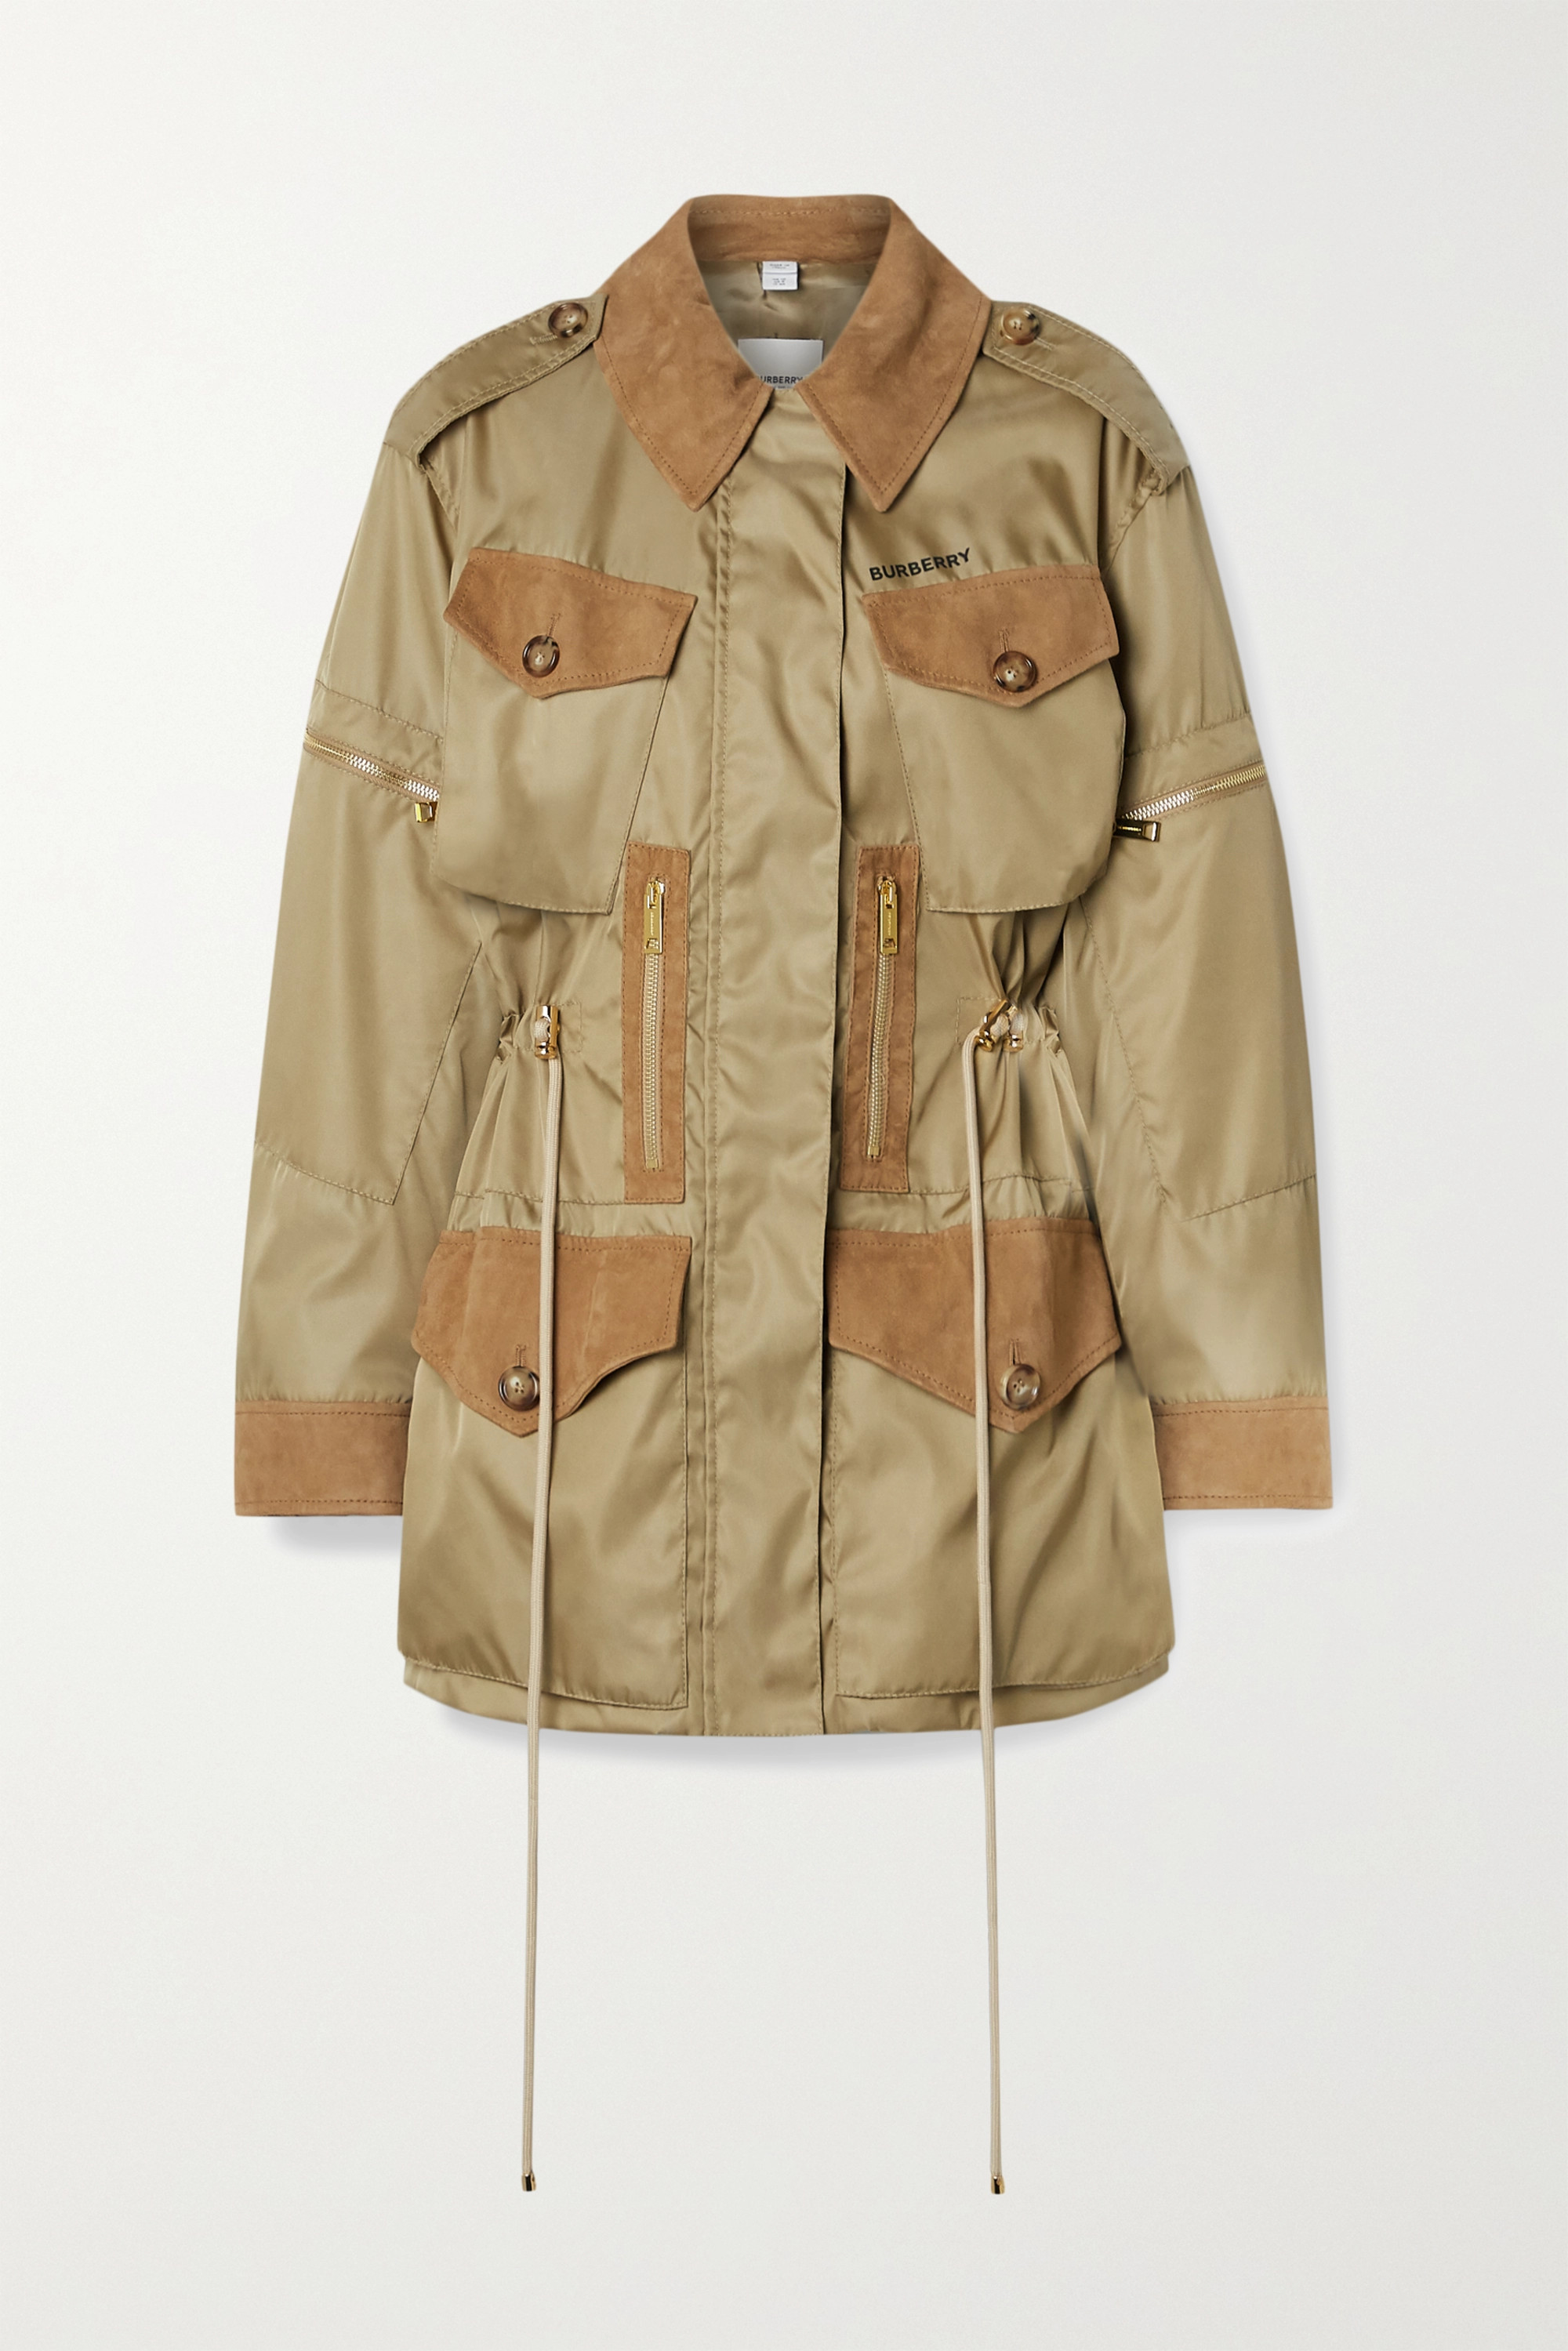 Burberry + Space for Giants suede-trimmed nylon jacket